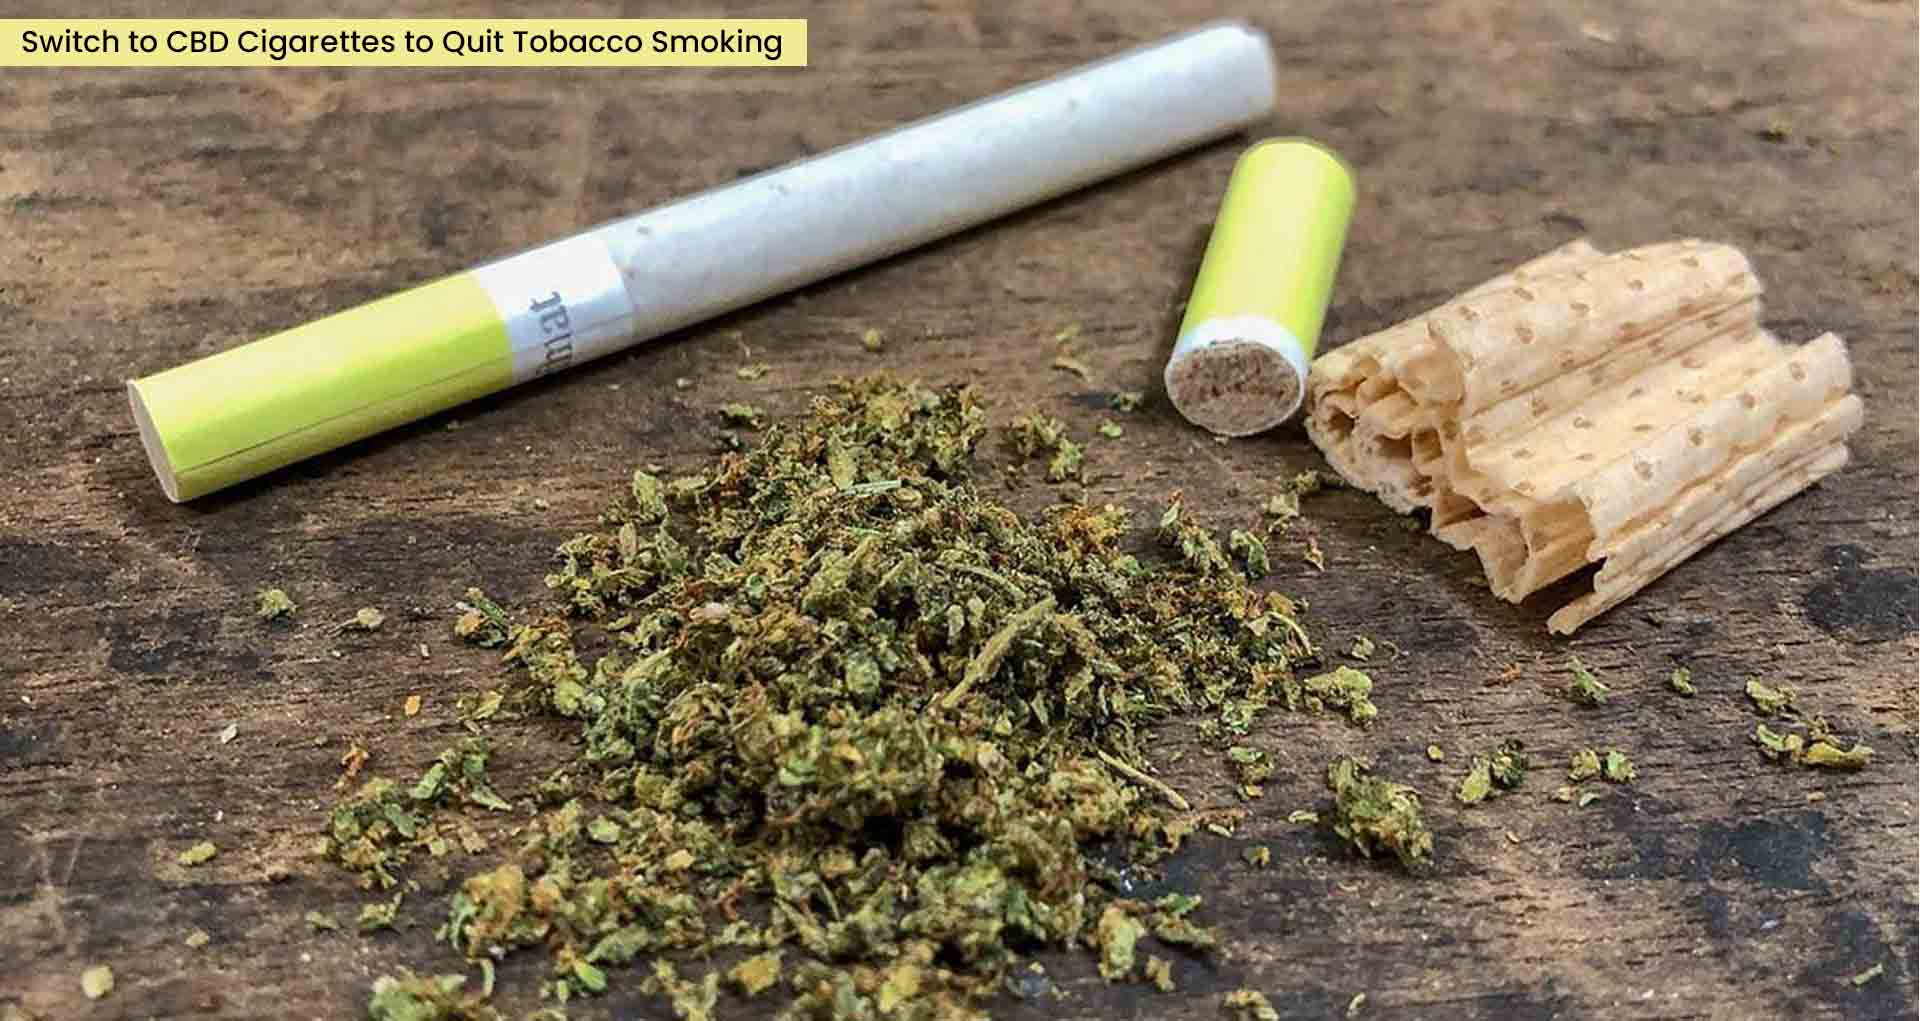 Switch to CBD Cigarettes to Quit Tobacco Smoking